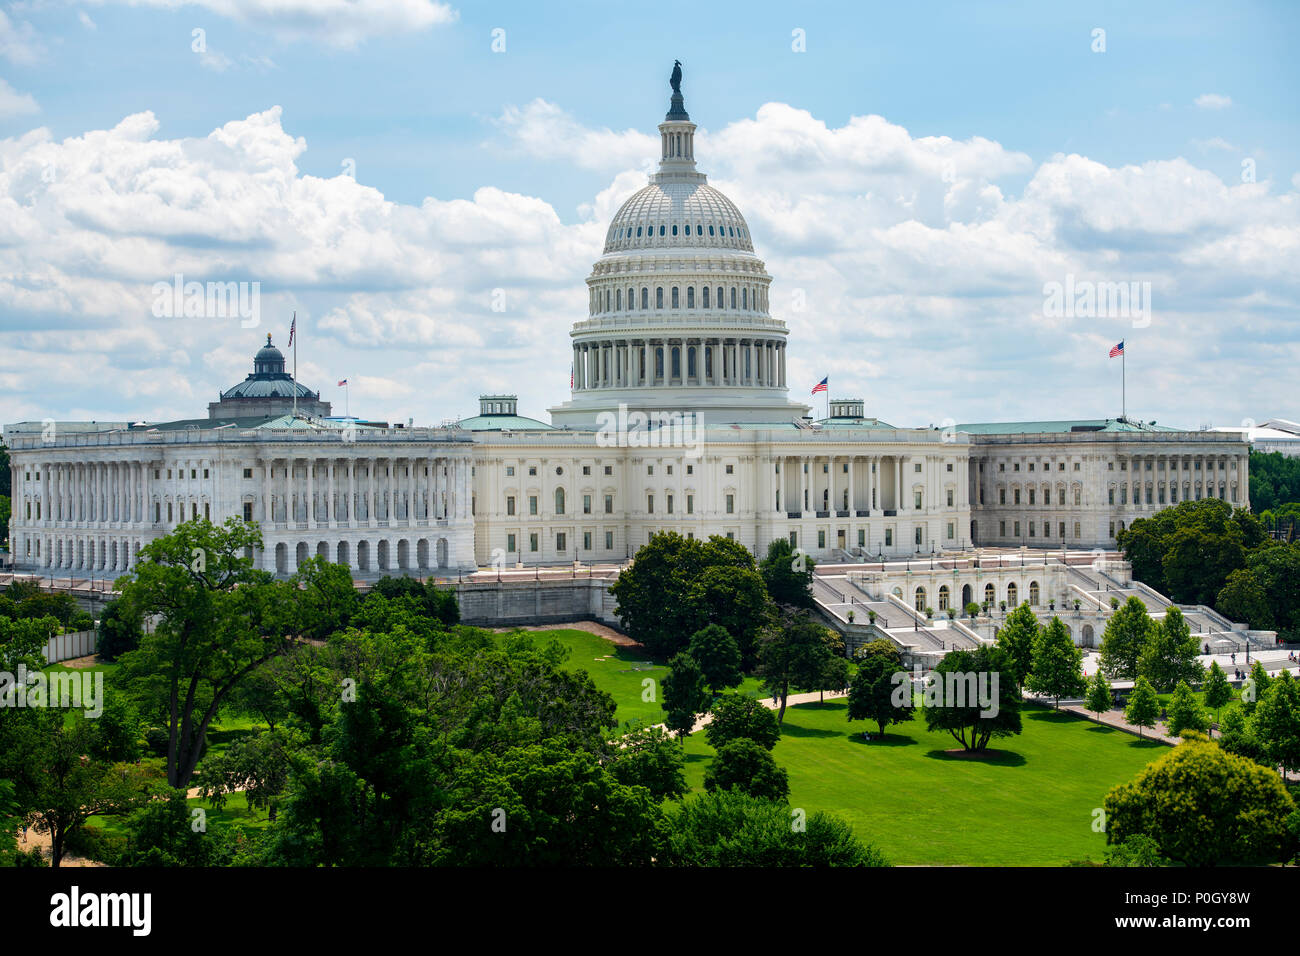 usa-wasington-dc-dc-the-u-s-capitol-building-on-the-hill-on-a-sunny-summer-day-P0GY8W.jpg